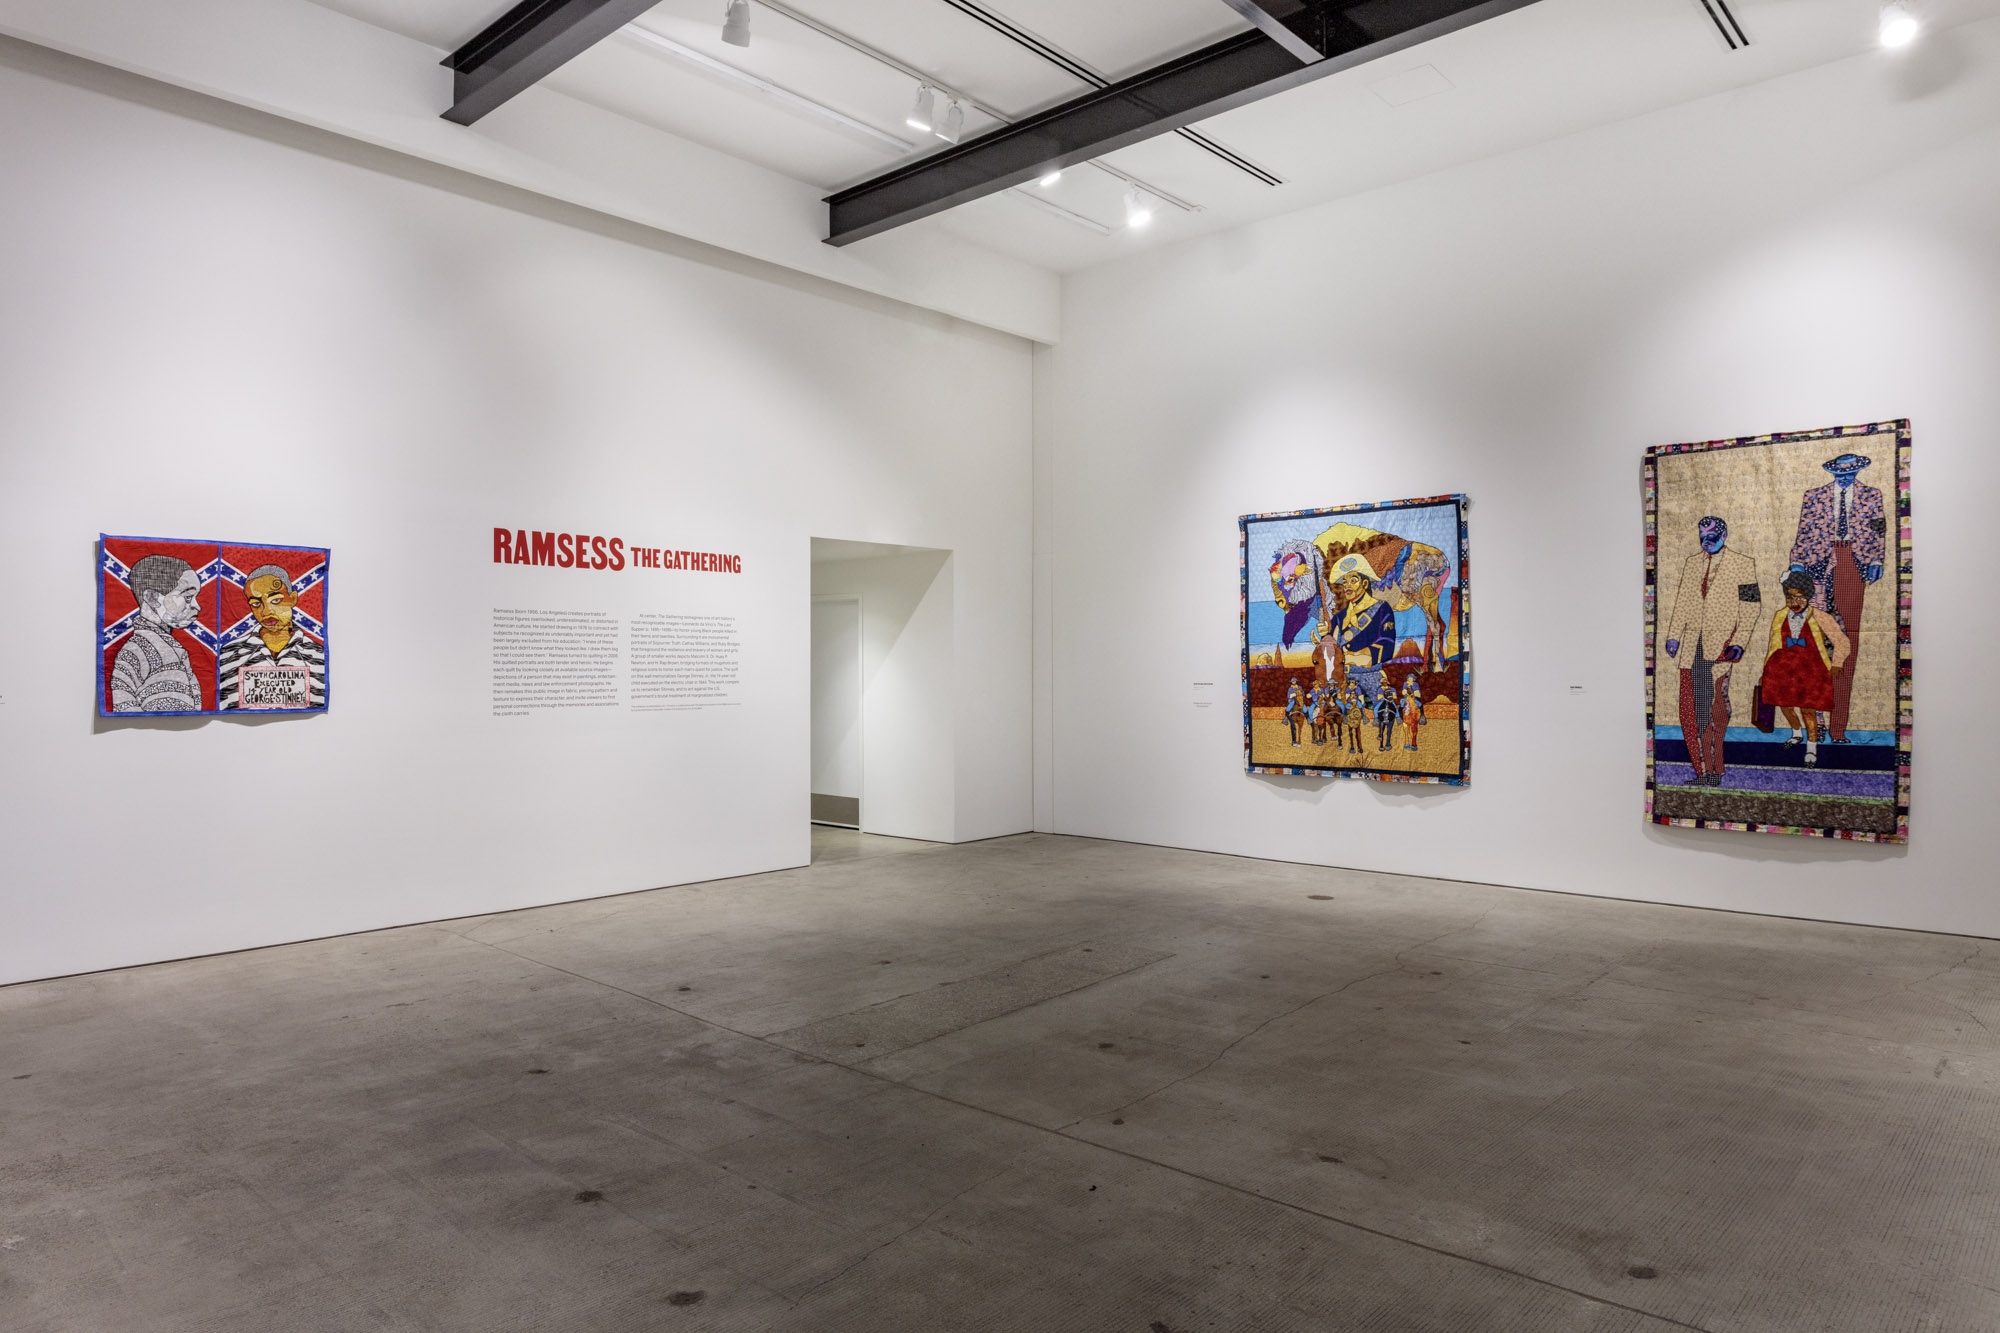 Installation view of Ramsess: The Gathering at Art + Practice. 12 October 2019 - 25 January 2020. Photo by Joshua White.